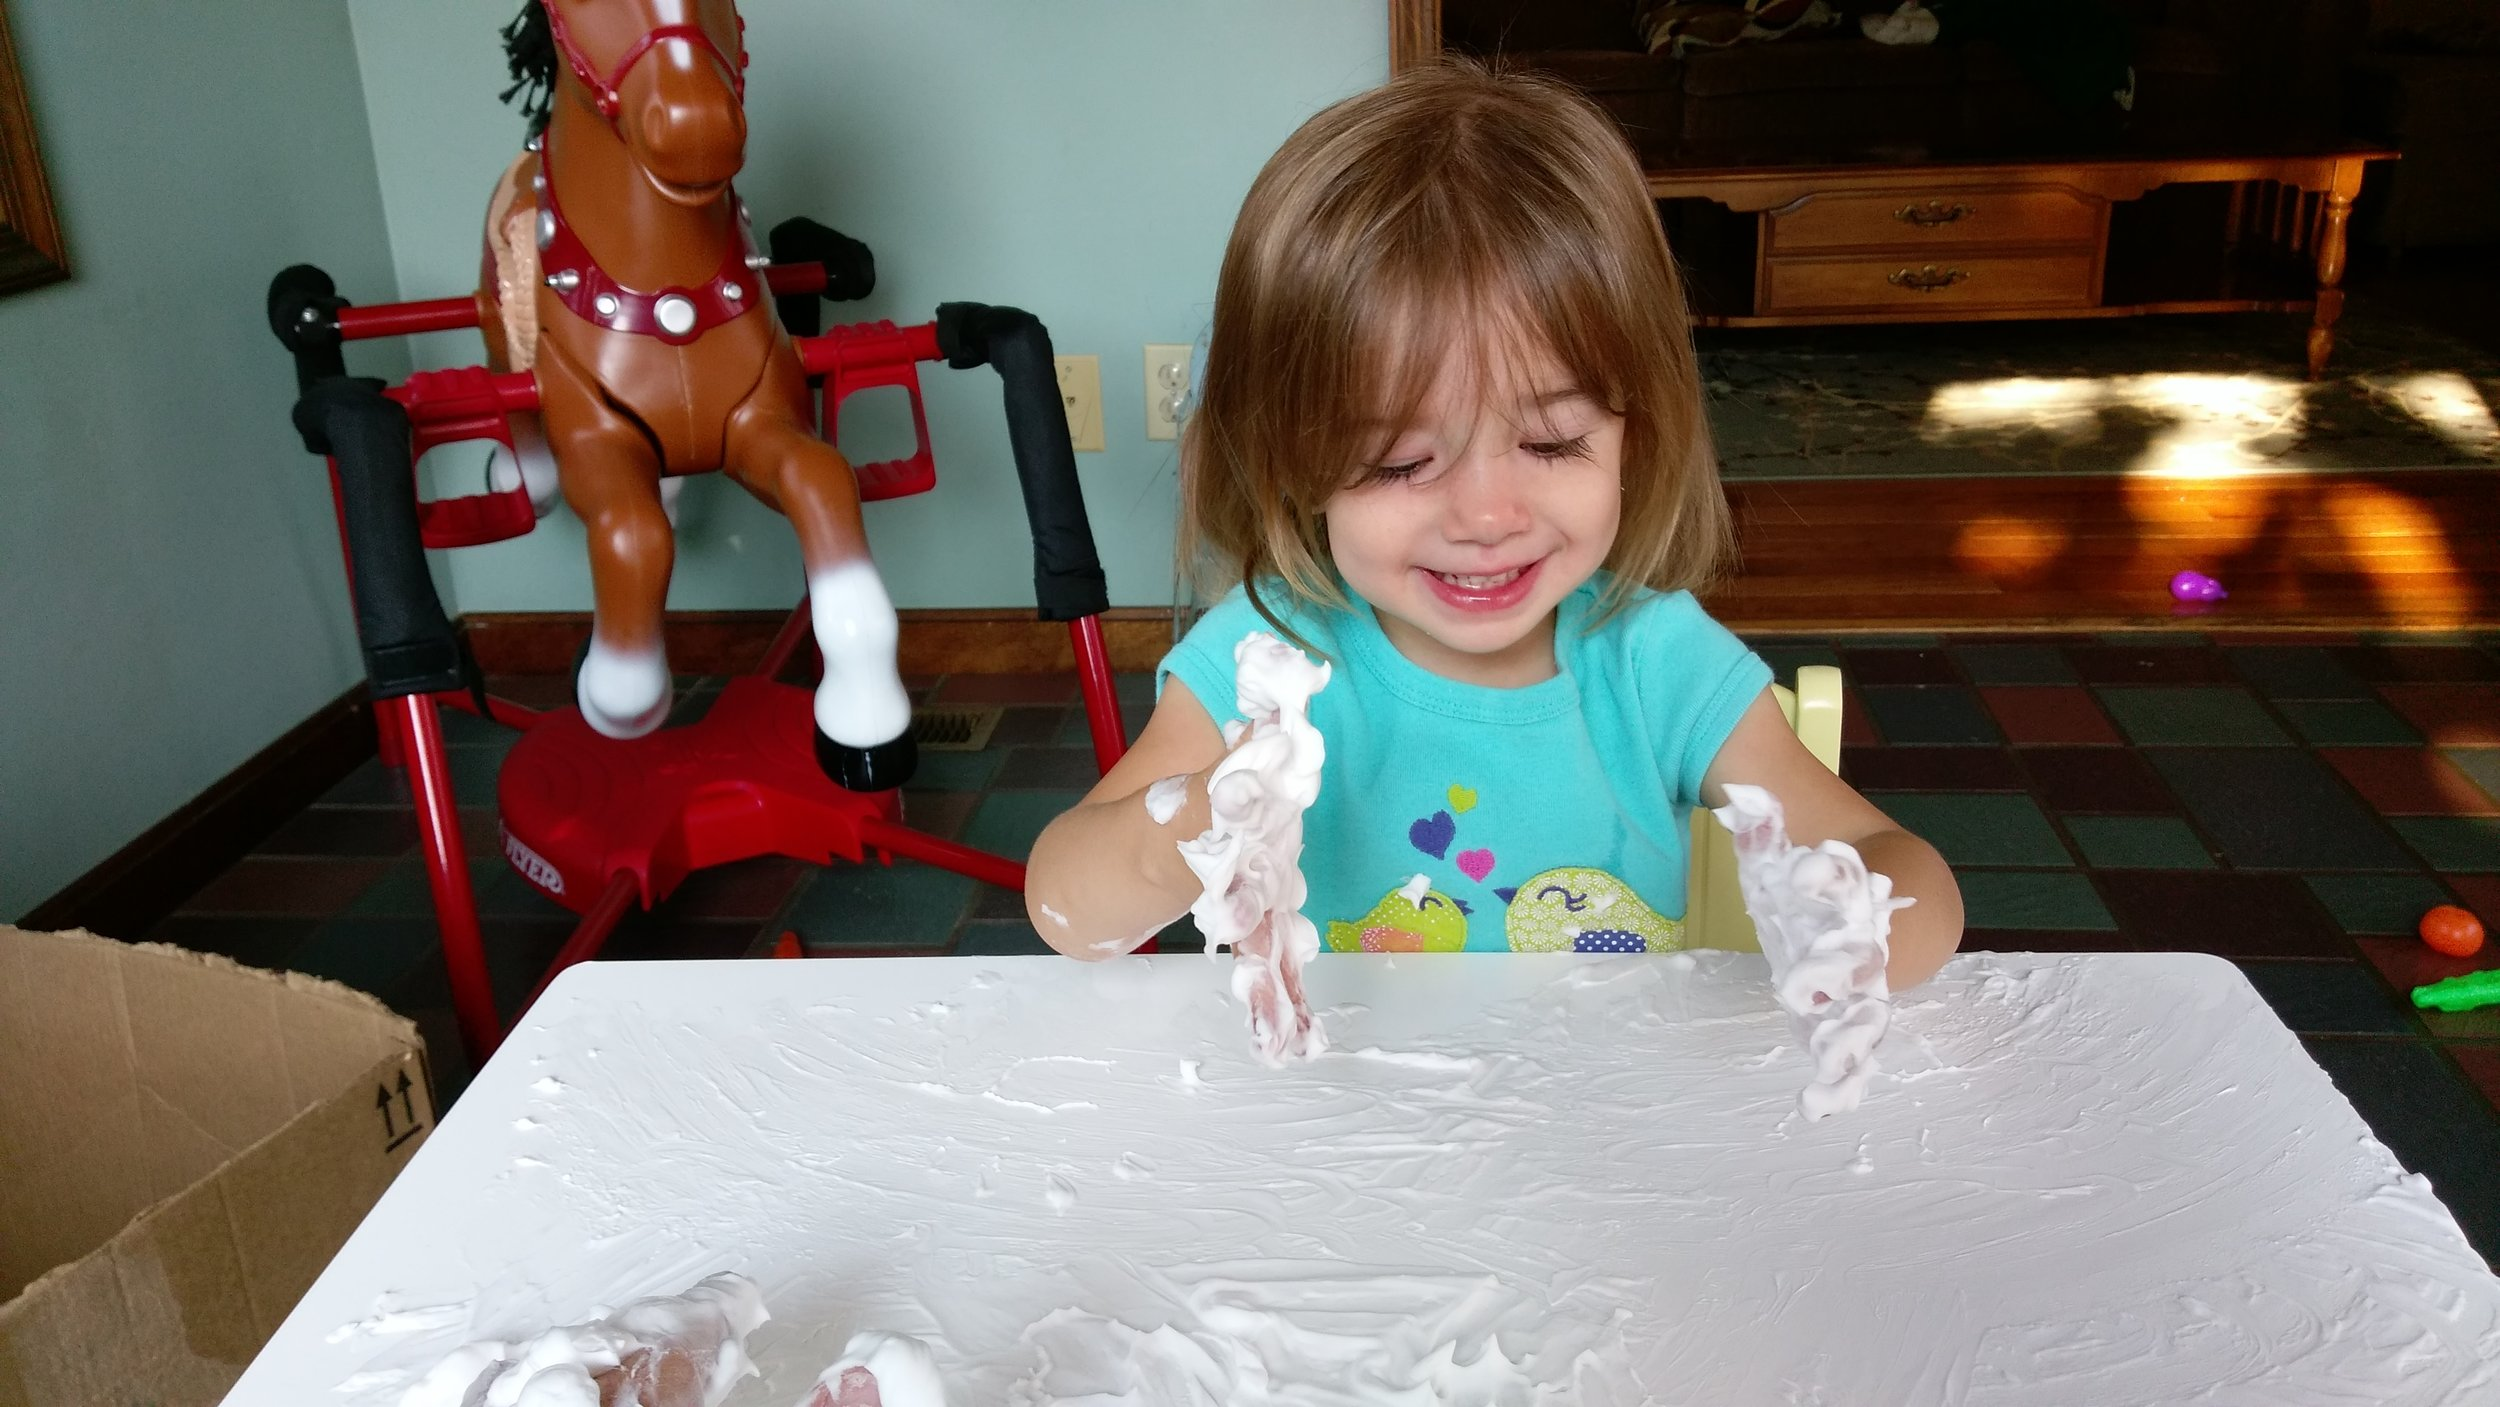 Wednesday morning, pink eye shmink eye, Cece feels great and plays with shaving cream